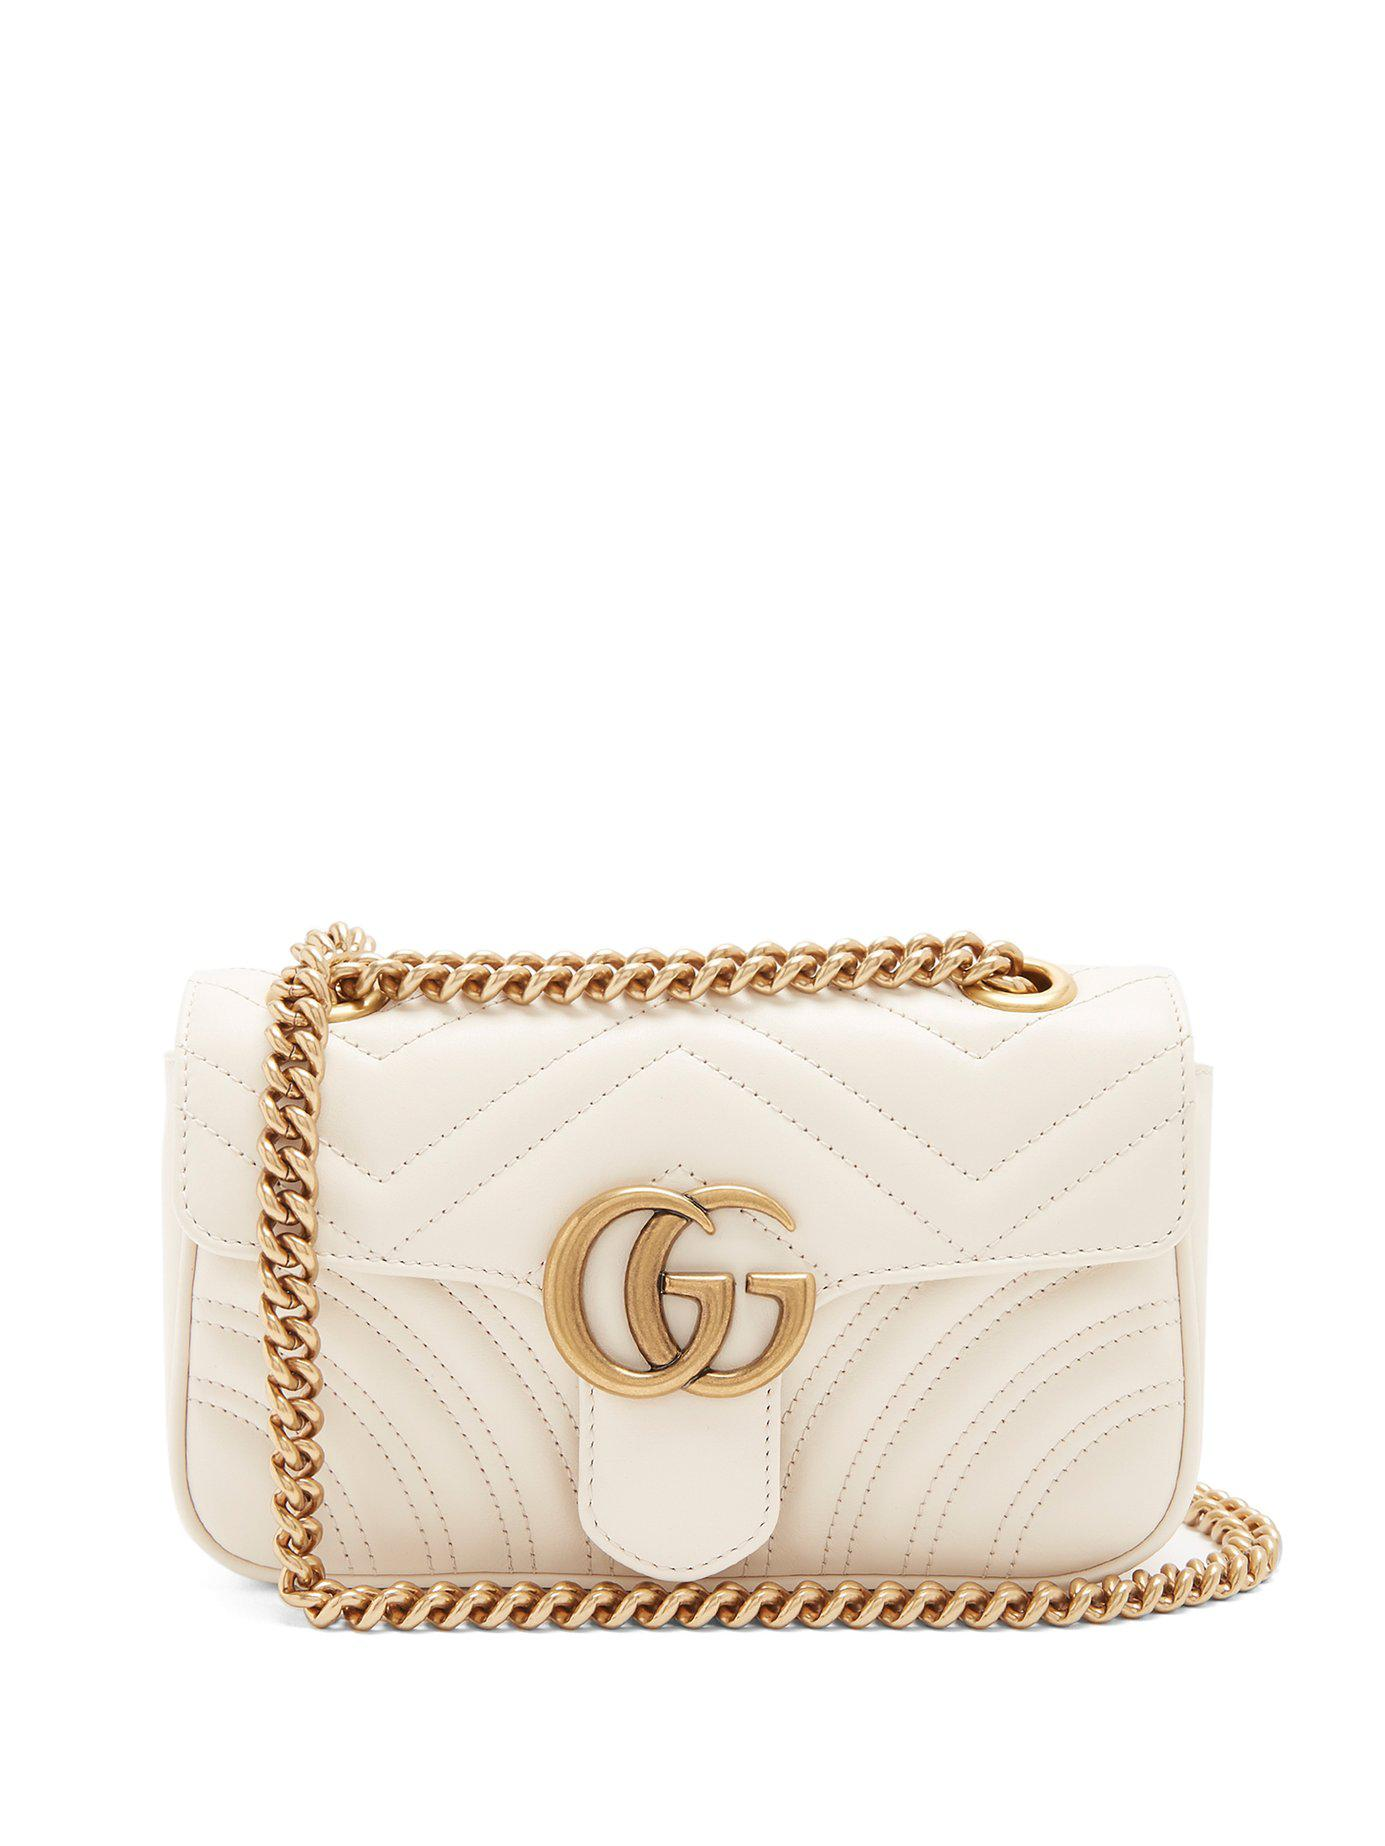 fc86de39b406 Gucci Gg Marmont Mini Quilted Leather Cross Body Bag in White - Save ...